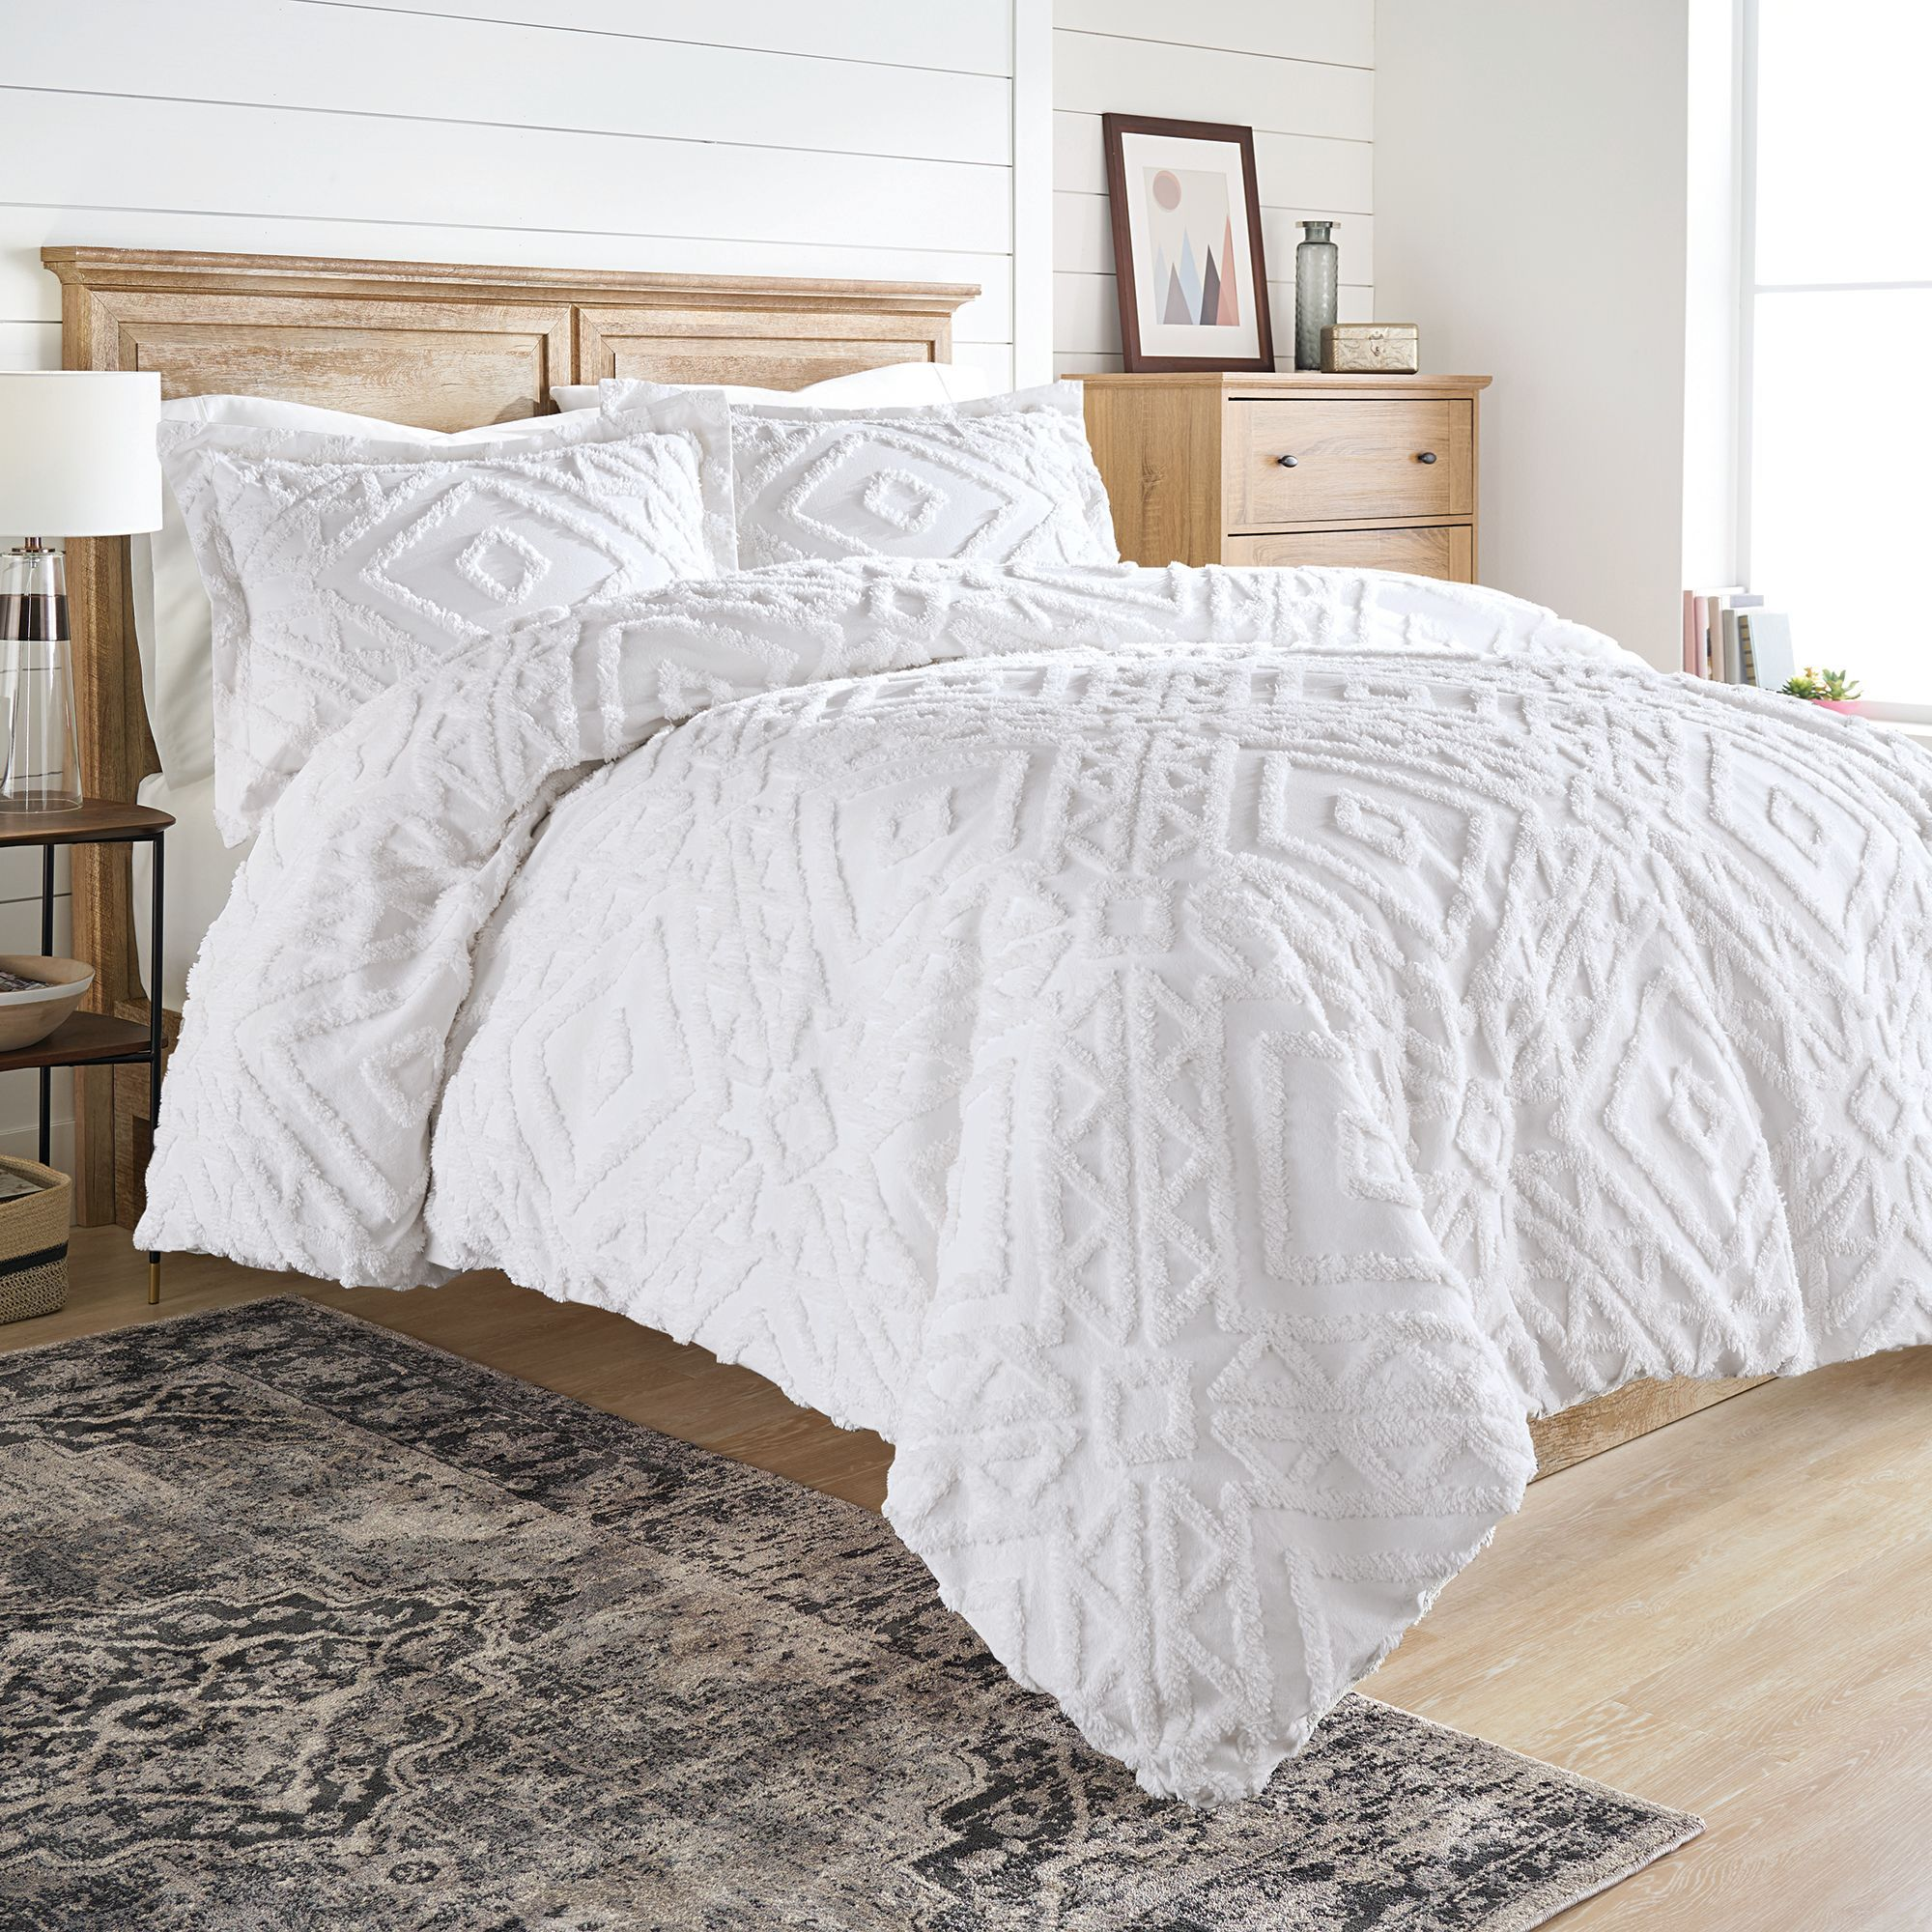 Better Homes And Gardens Full Queen 3 Piece Chenille Duvet Cover Set Walmart Com In 2020 Duvet Cover Sets White Comforter Bedroom Comfortable Bedroom